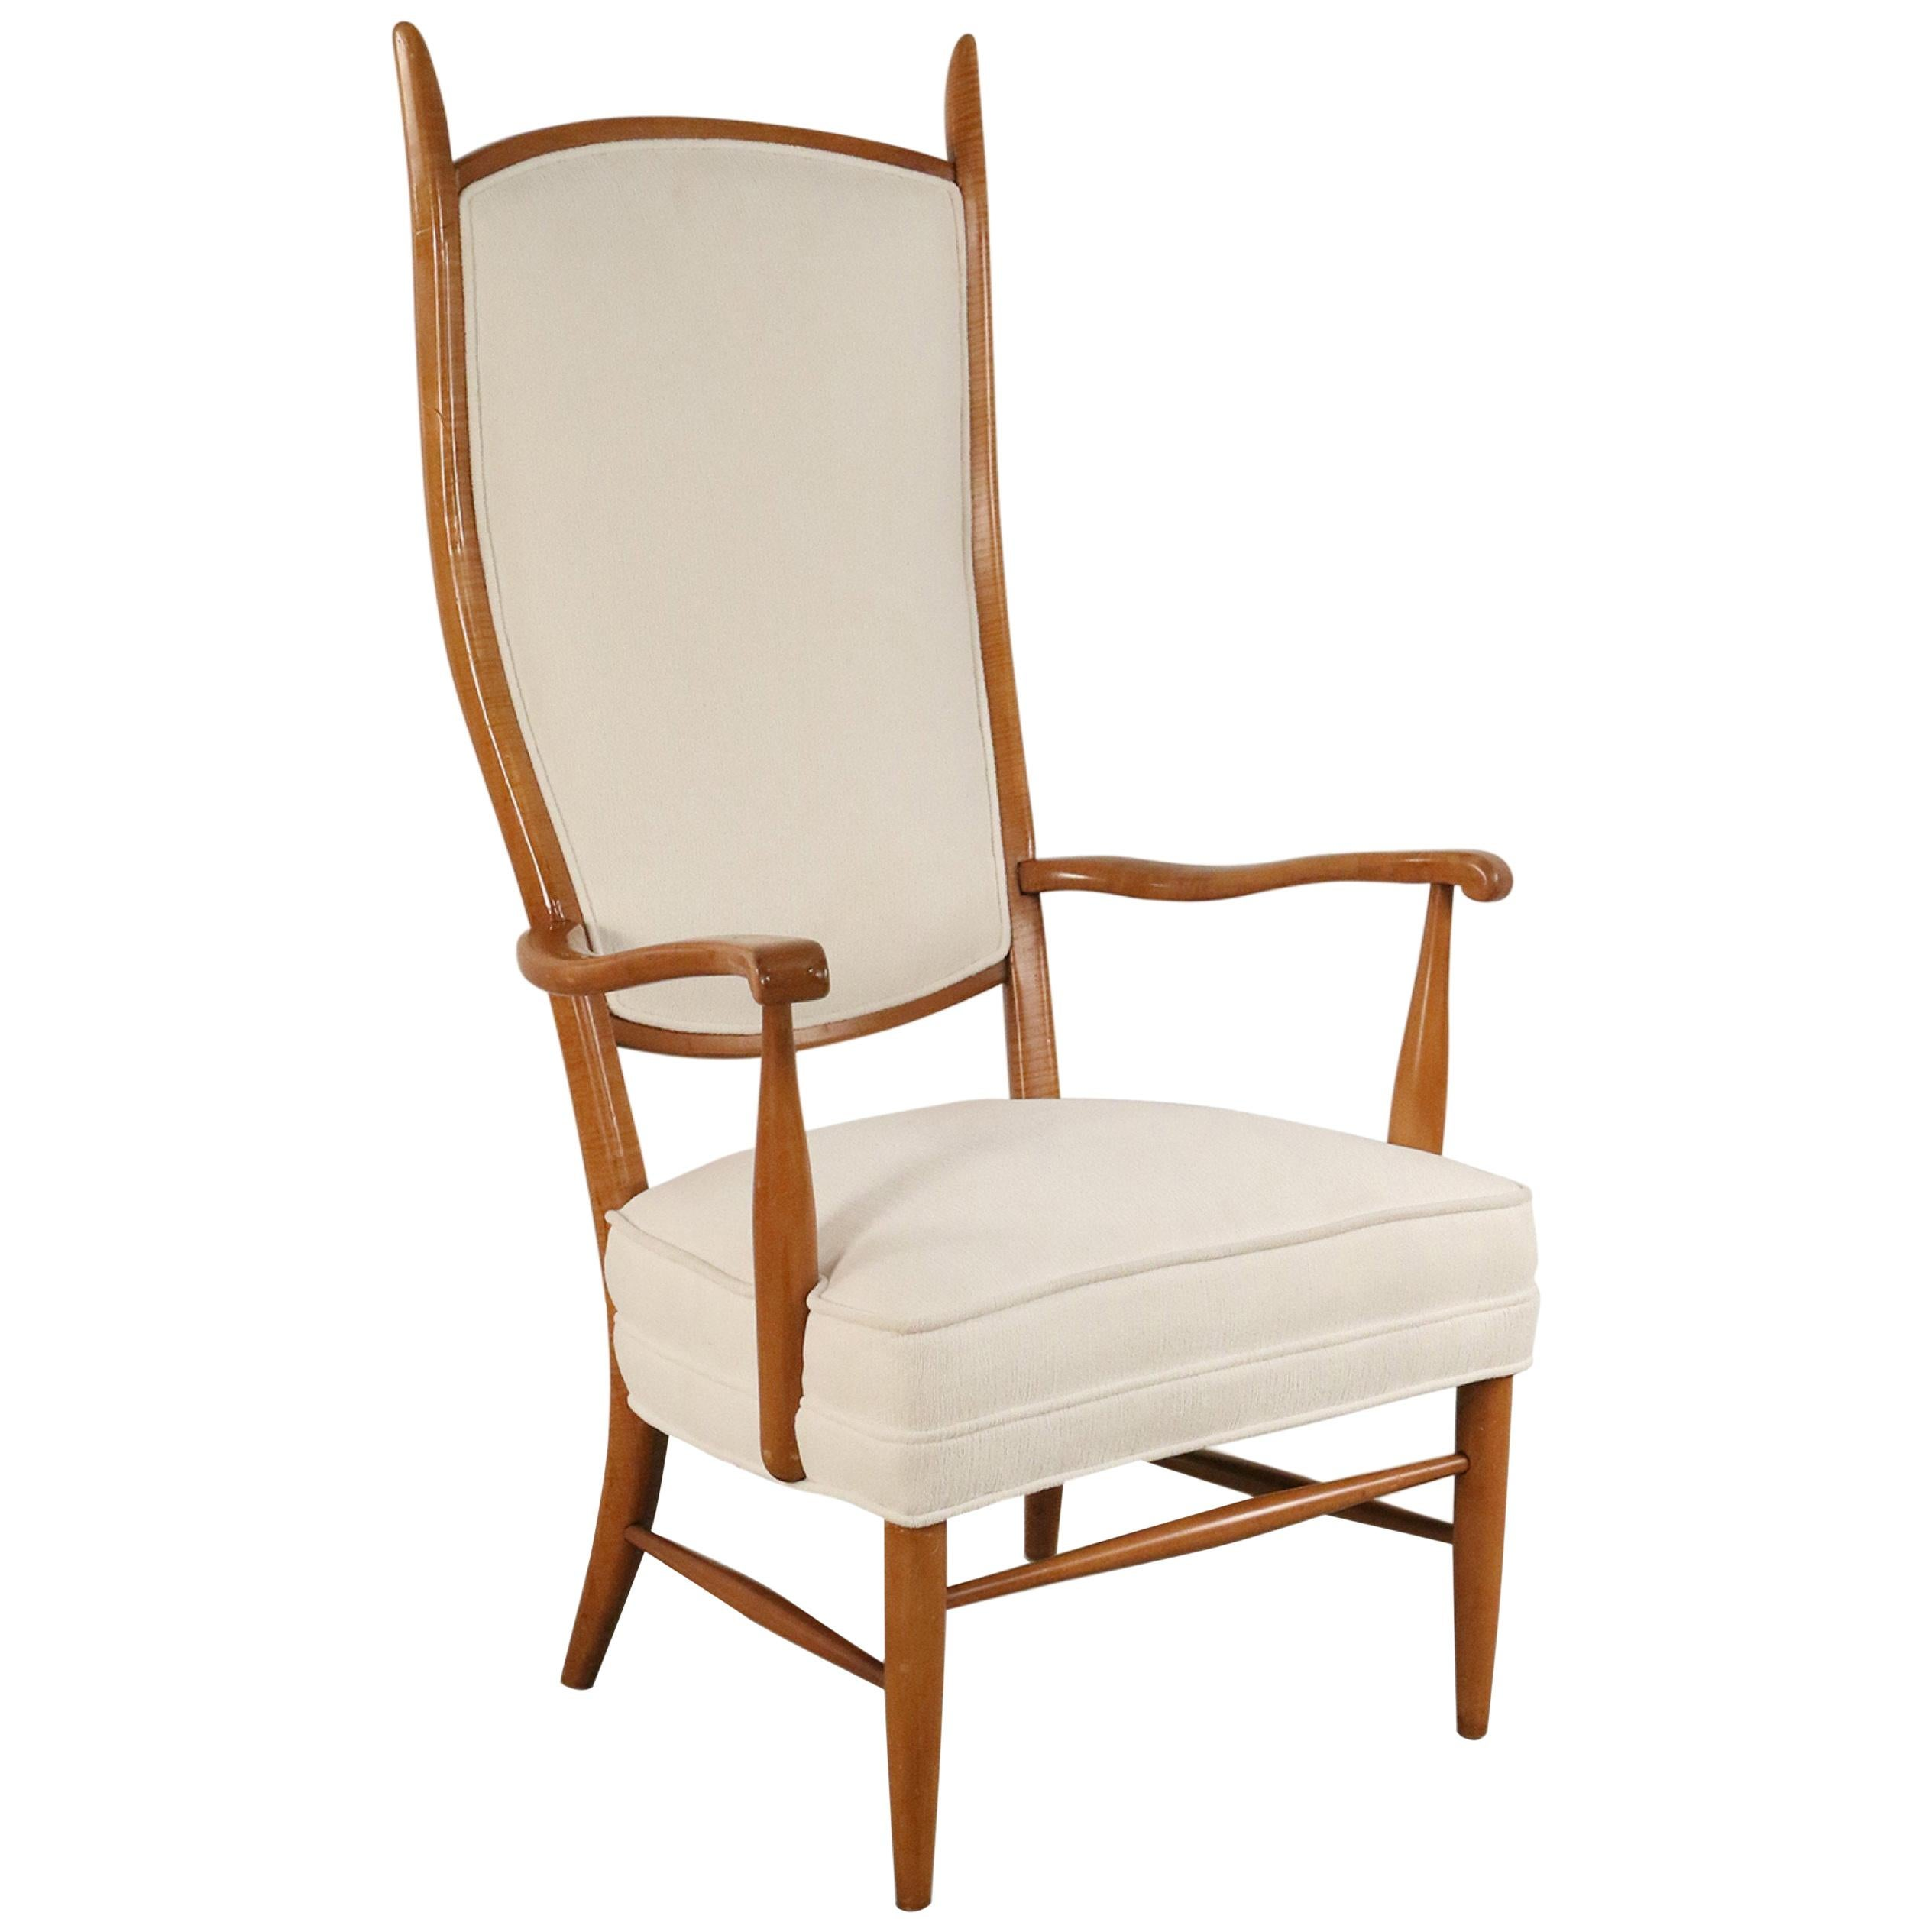 Edward Wormley Style Midcentury High Back Beige Upholstered Maple Armchair